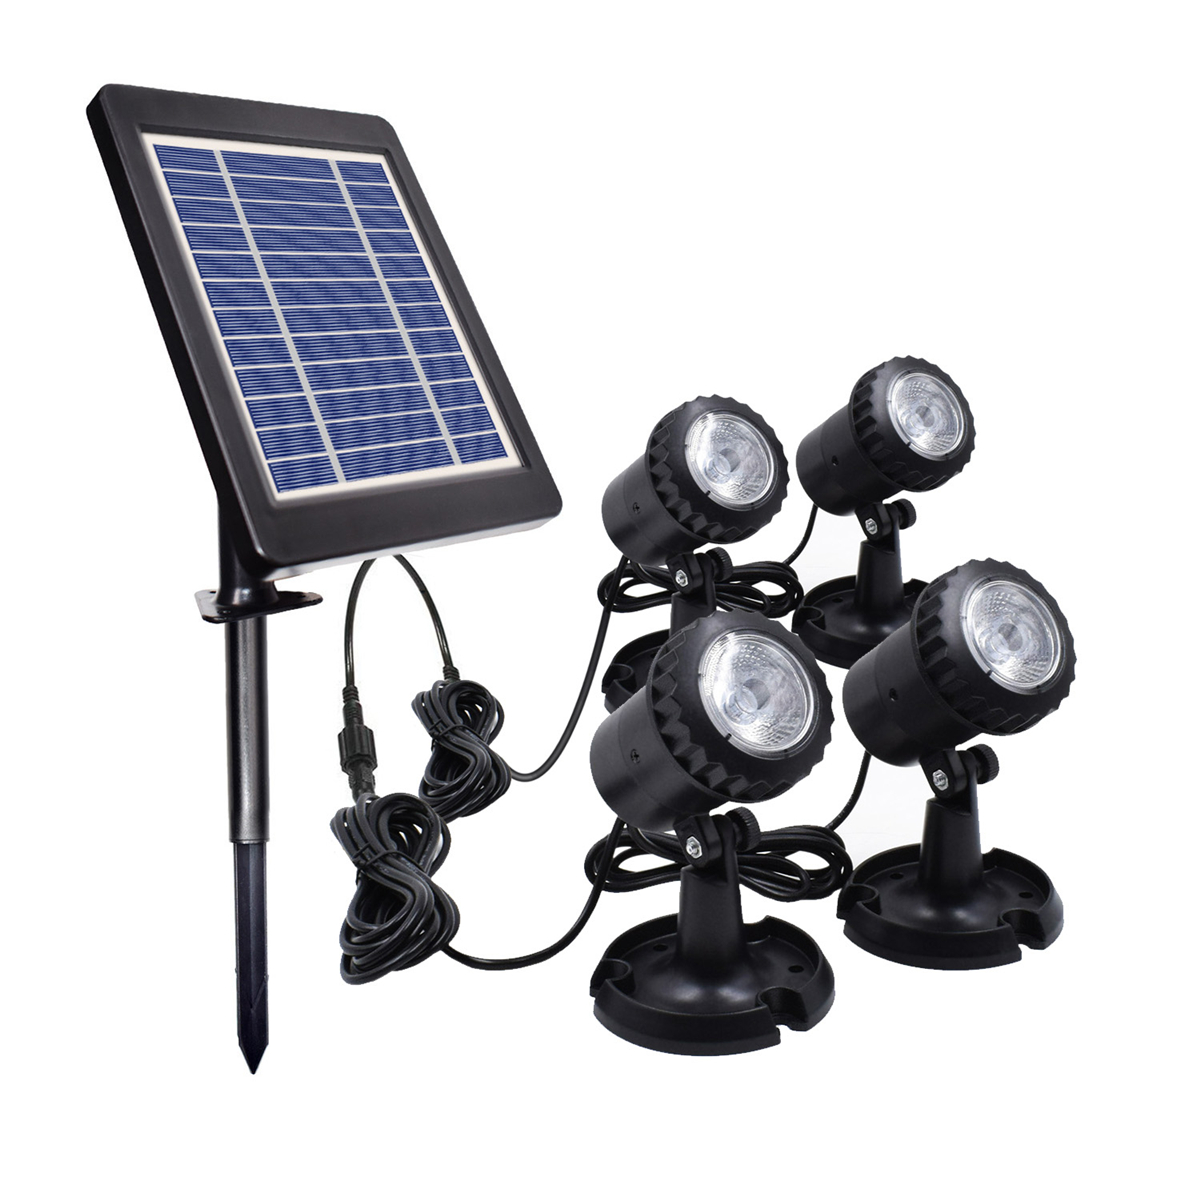 IP68 4 In1 Waterproof Underwater Fountain Pond Lights Solar Light LED Spotlights with Green/Blue/White Lamps for Outdoor Amphibious Lawn Pool Garden Path Aquarium